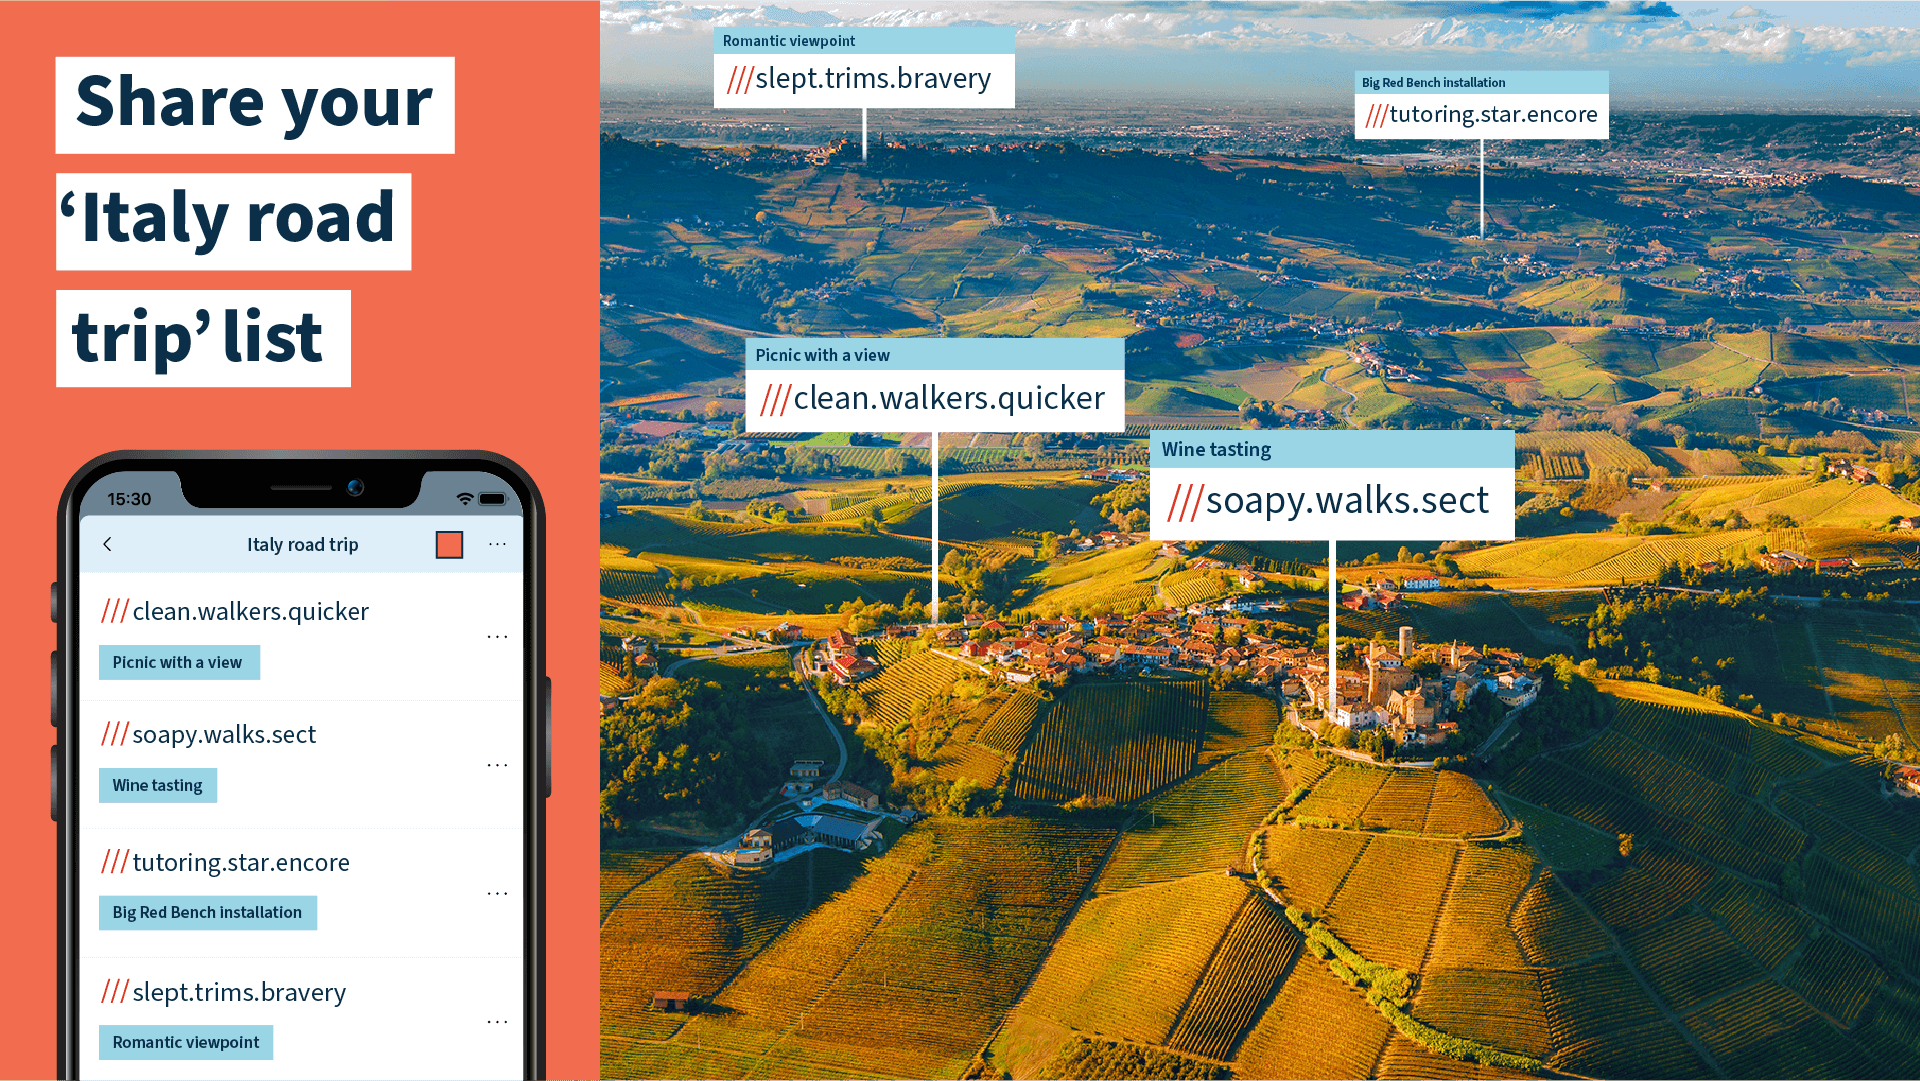 list of what3words addresses saved under 'Italy road trip' with sharing options